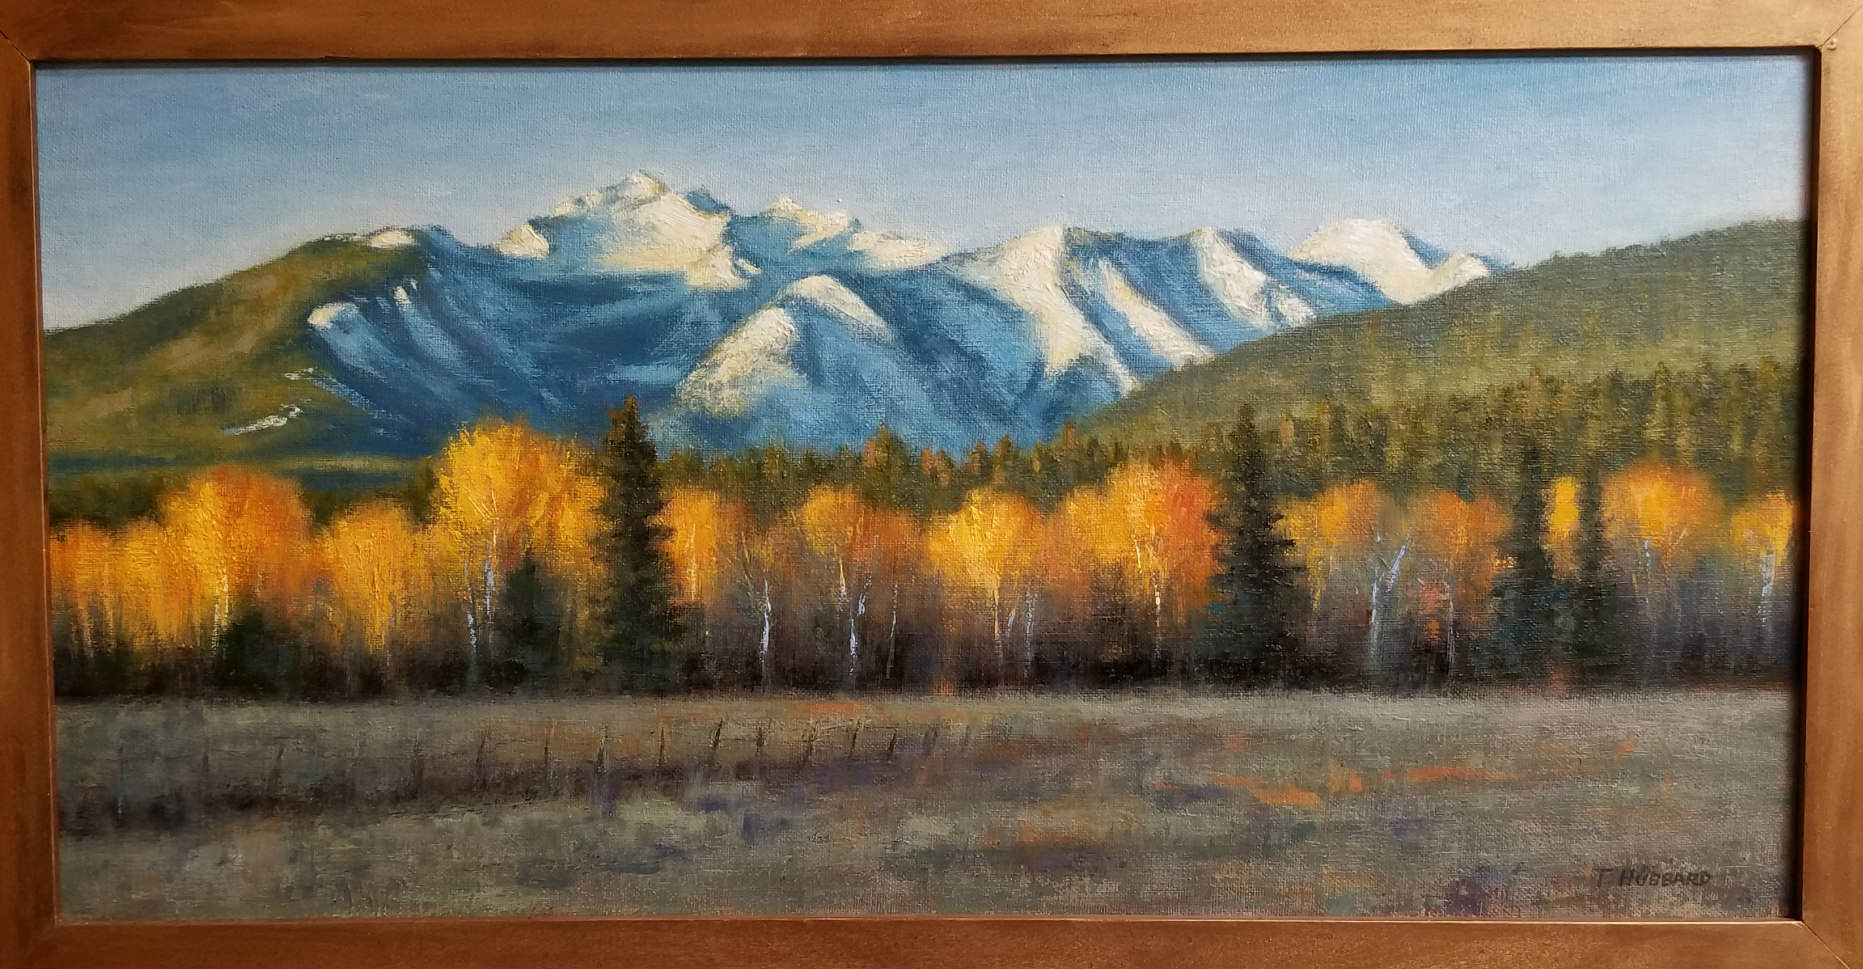 Three Sisters at Dawn , 30x18, oil on canvas by Tracie Hubbard